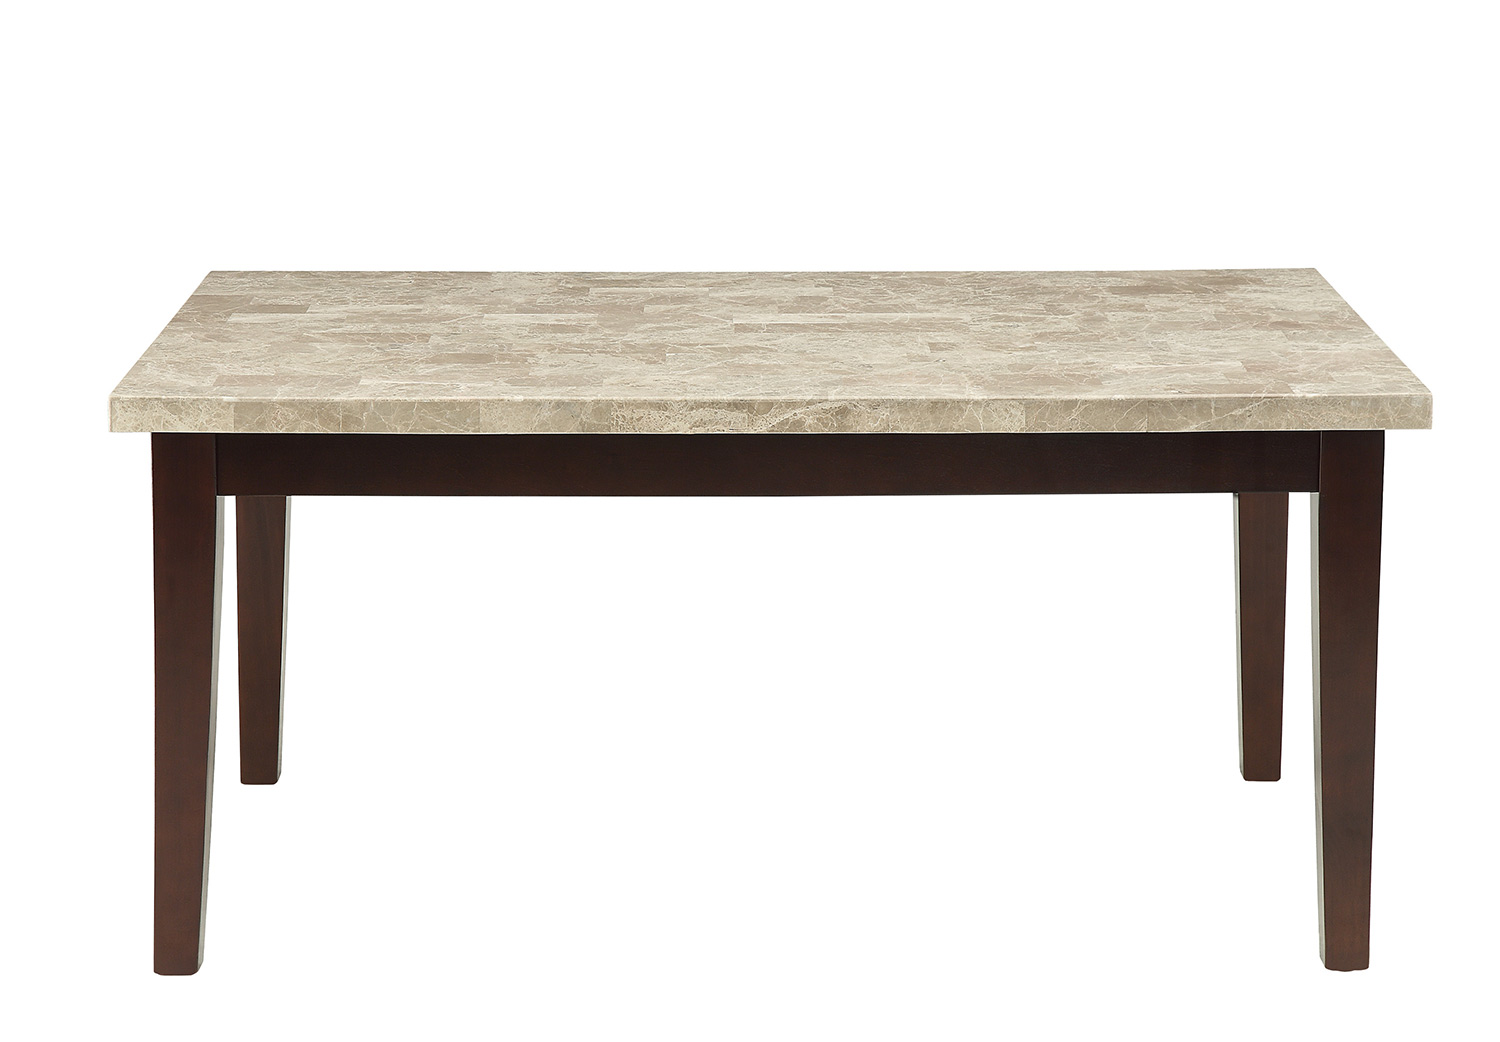 Homelegance Decatur Dining Table - Espresso